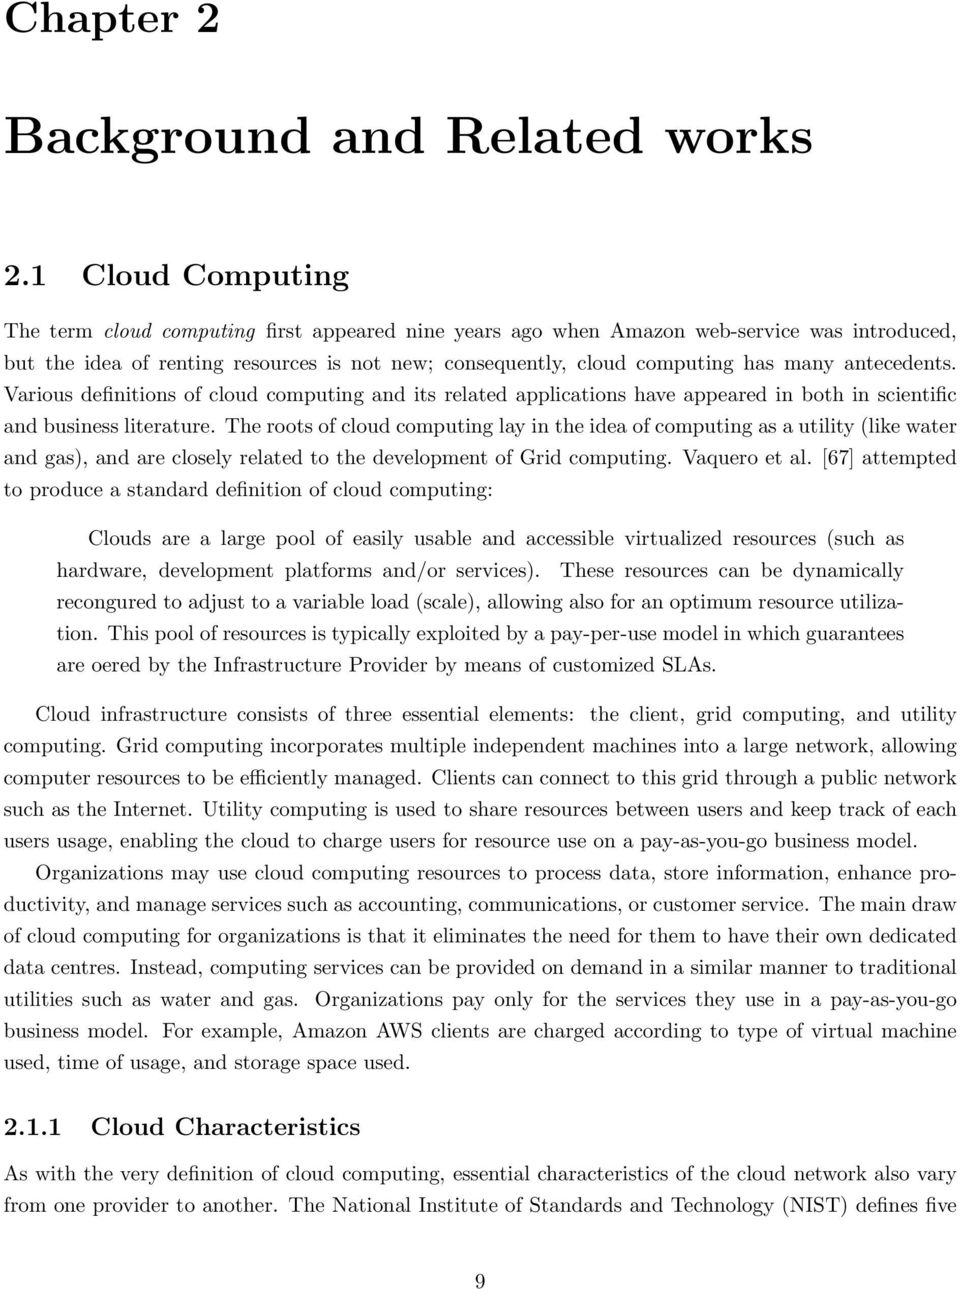 antecedents. Various definitions of cloud computing and its related applications have appeared in both in scientific and business literature.